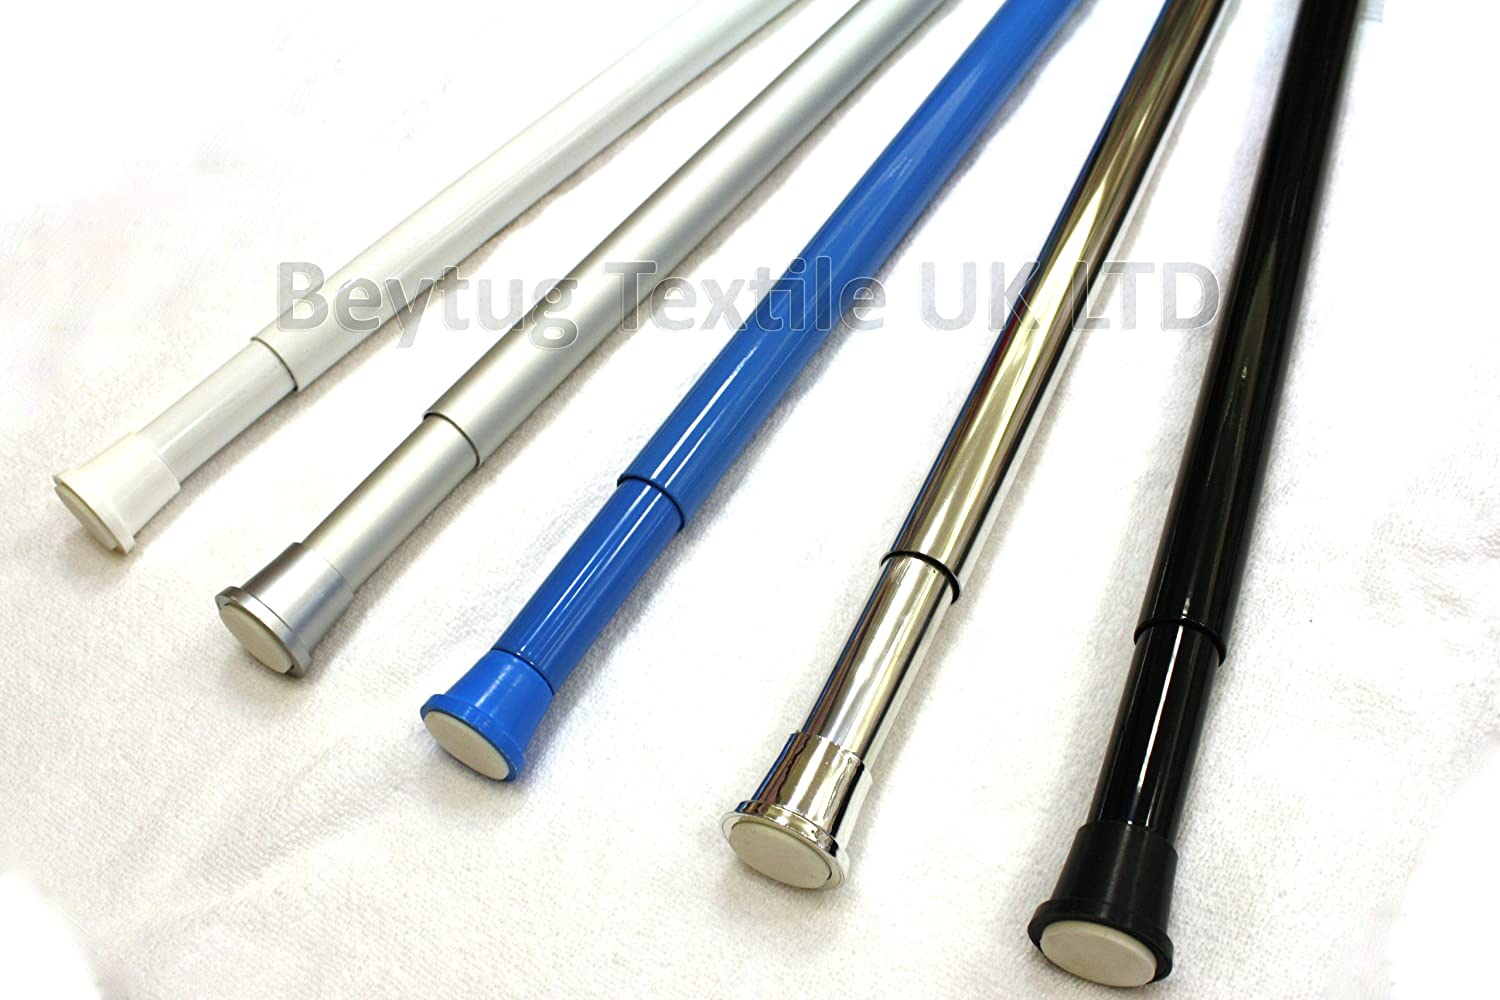 and rings curtains to buy photos rods set of size rod curtain double full thick frightening drapery brackets inch where